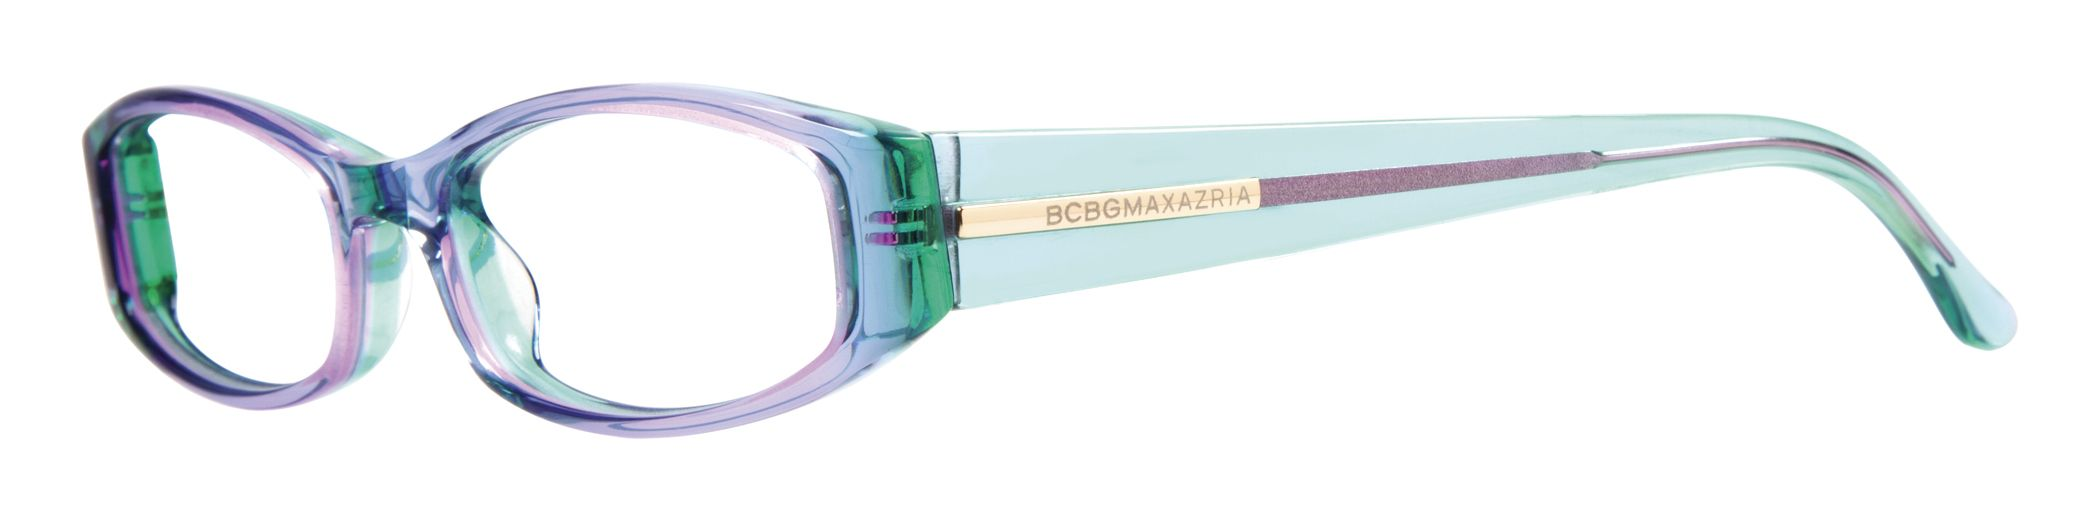 Melinda: All about color! Inspired by the @BCBG MAX AZRIA neon color ...